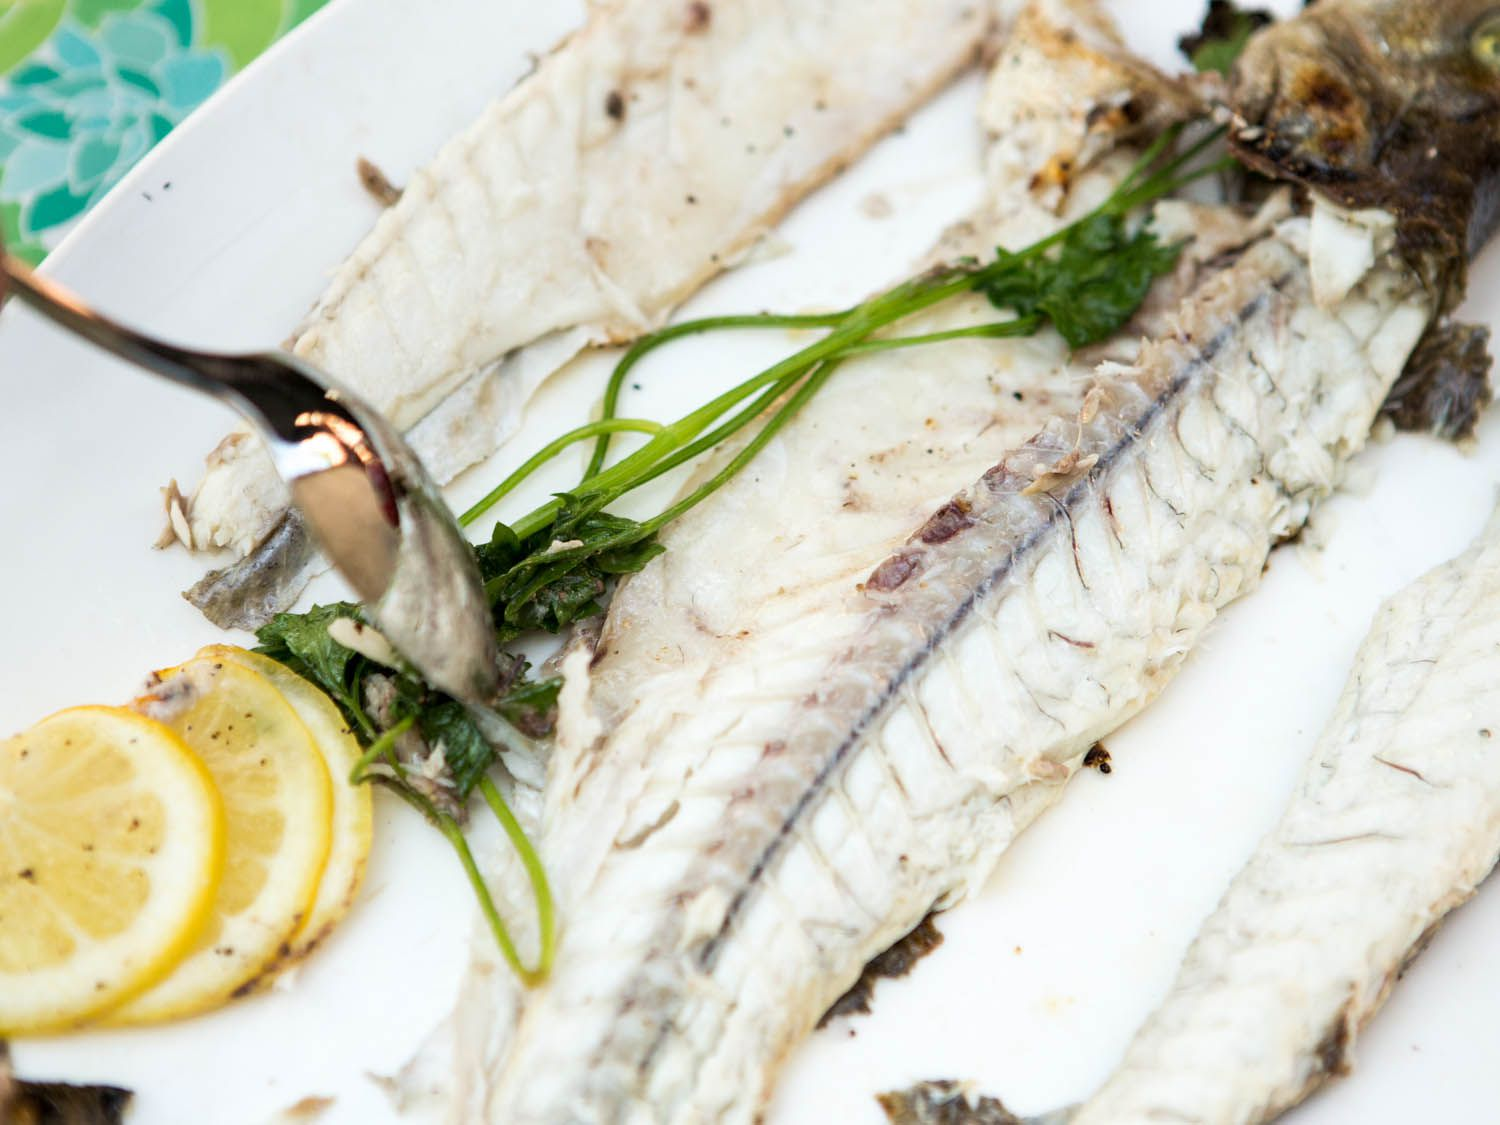 20140708-how-to-serve-whole-fish-vicky-wasik-20.jpg